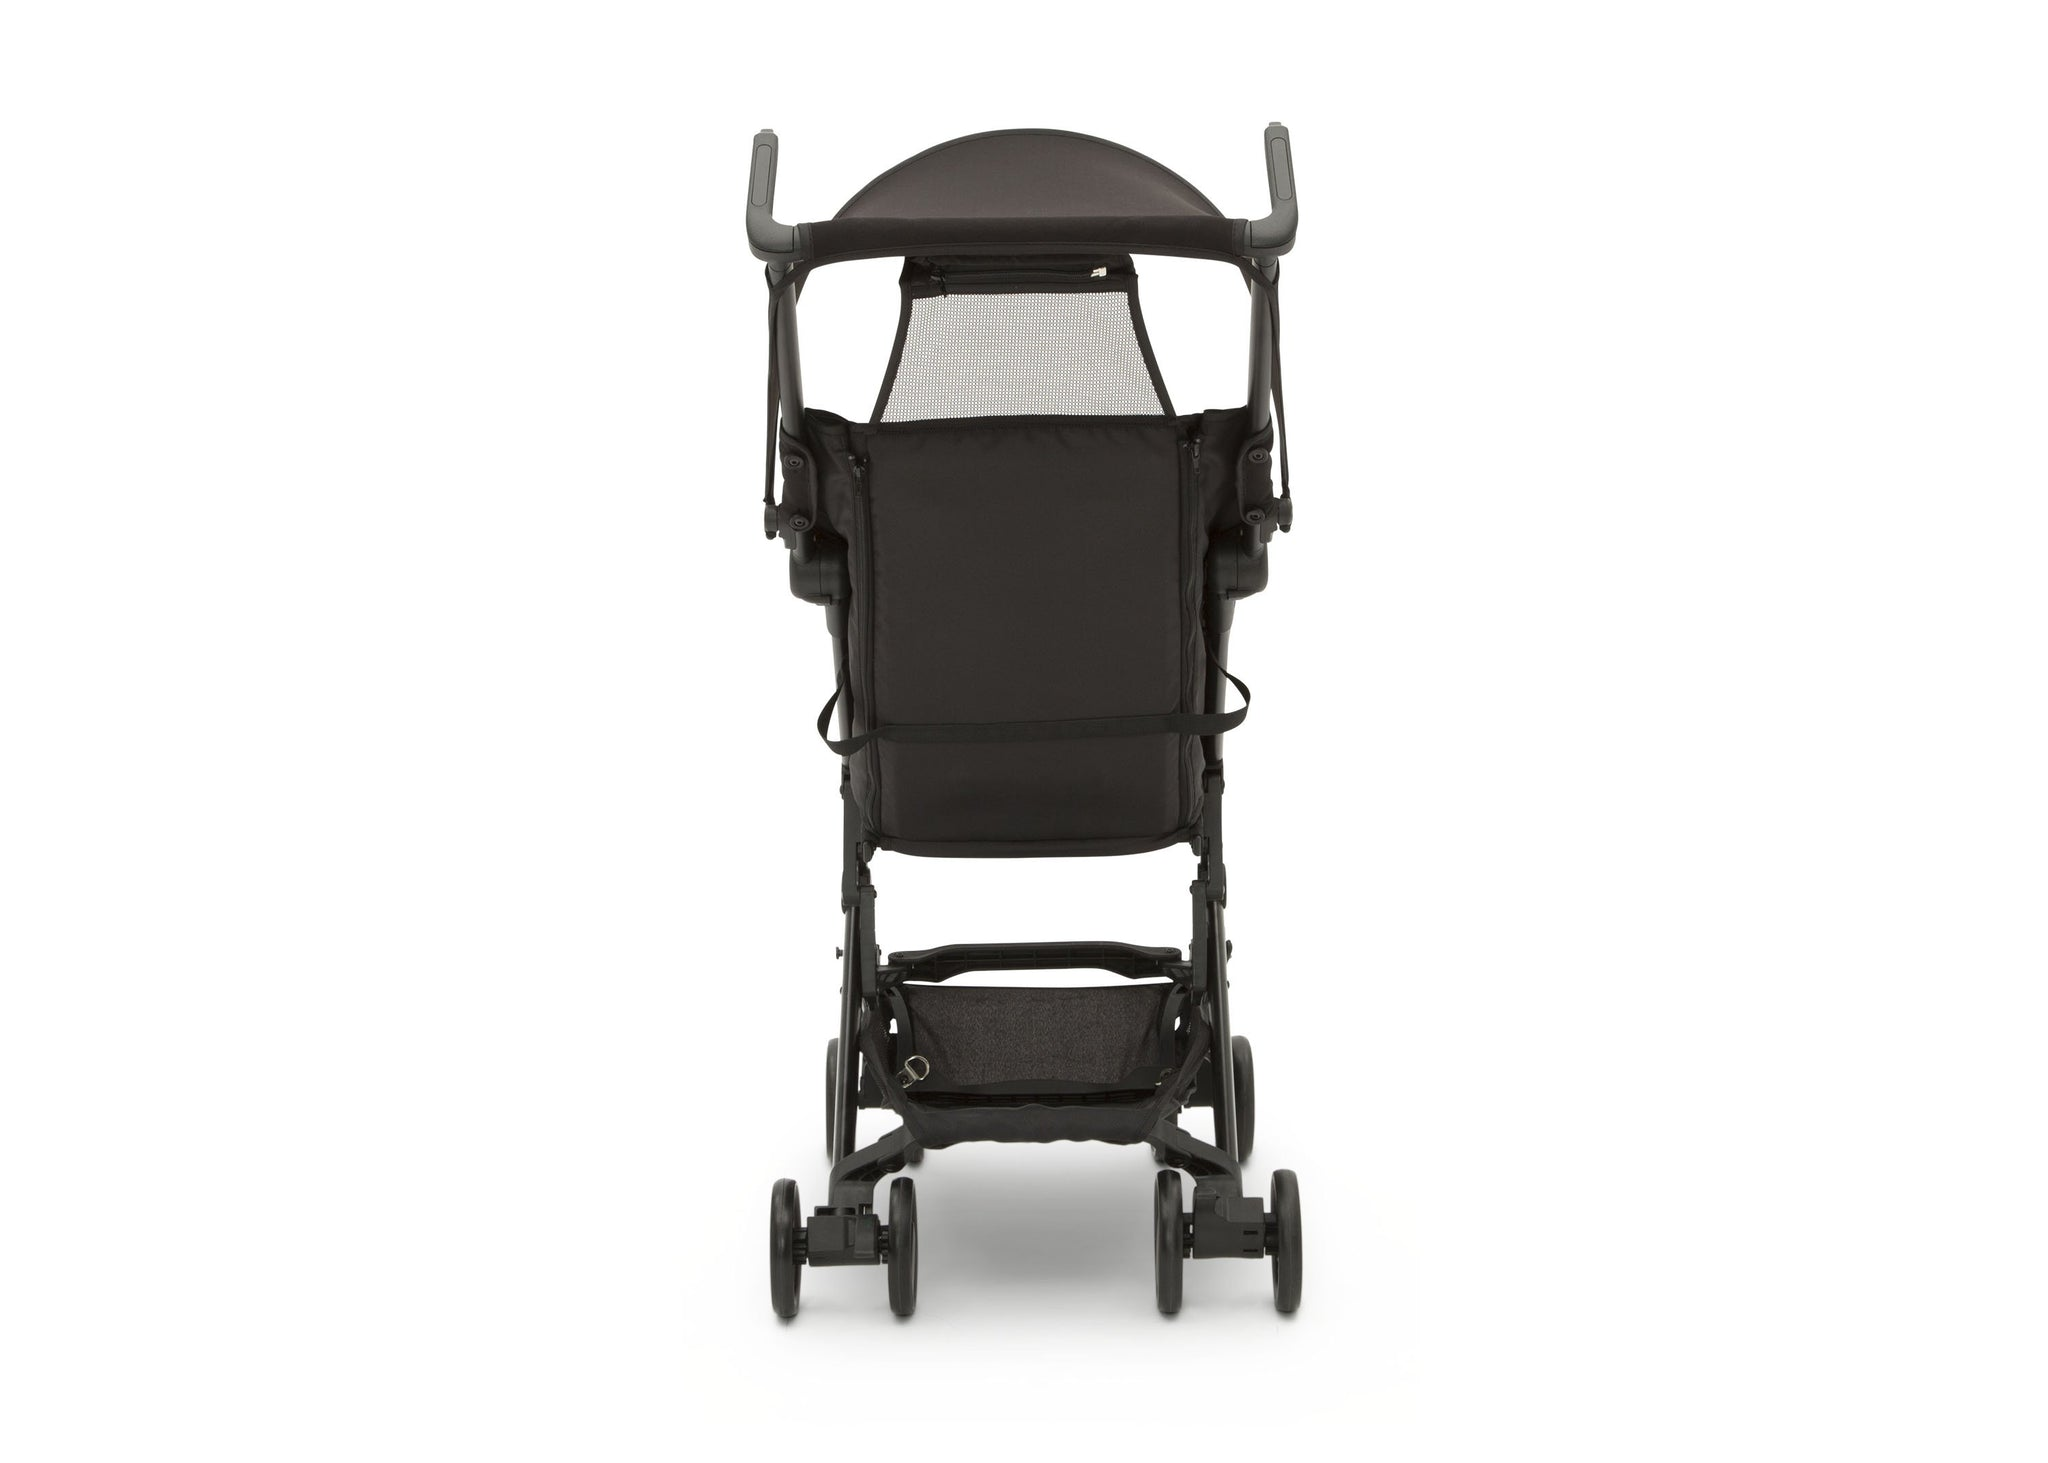 Jeep® Clutch Plus Travel Stroller with Reclining Seat Black with Grey (2184), Storage Basket Rear View